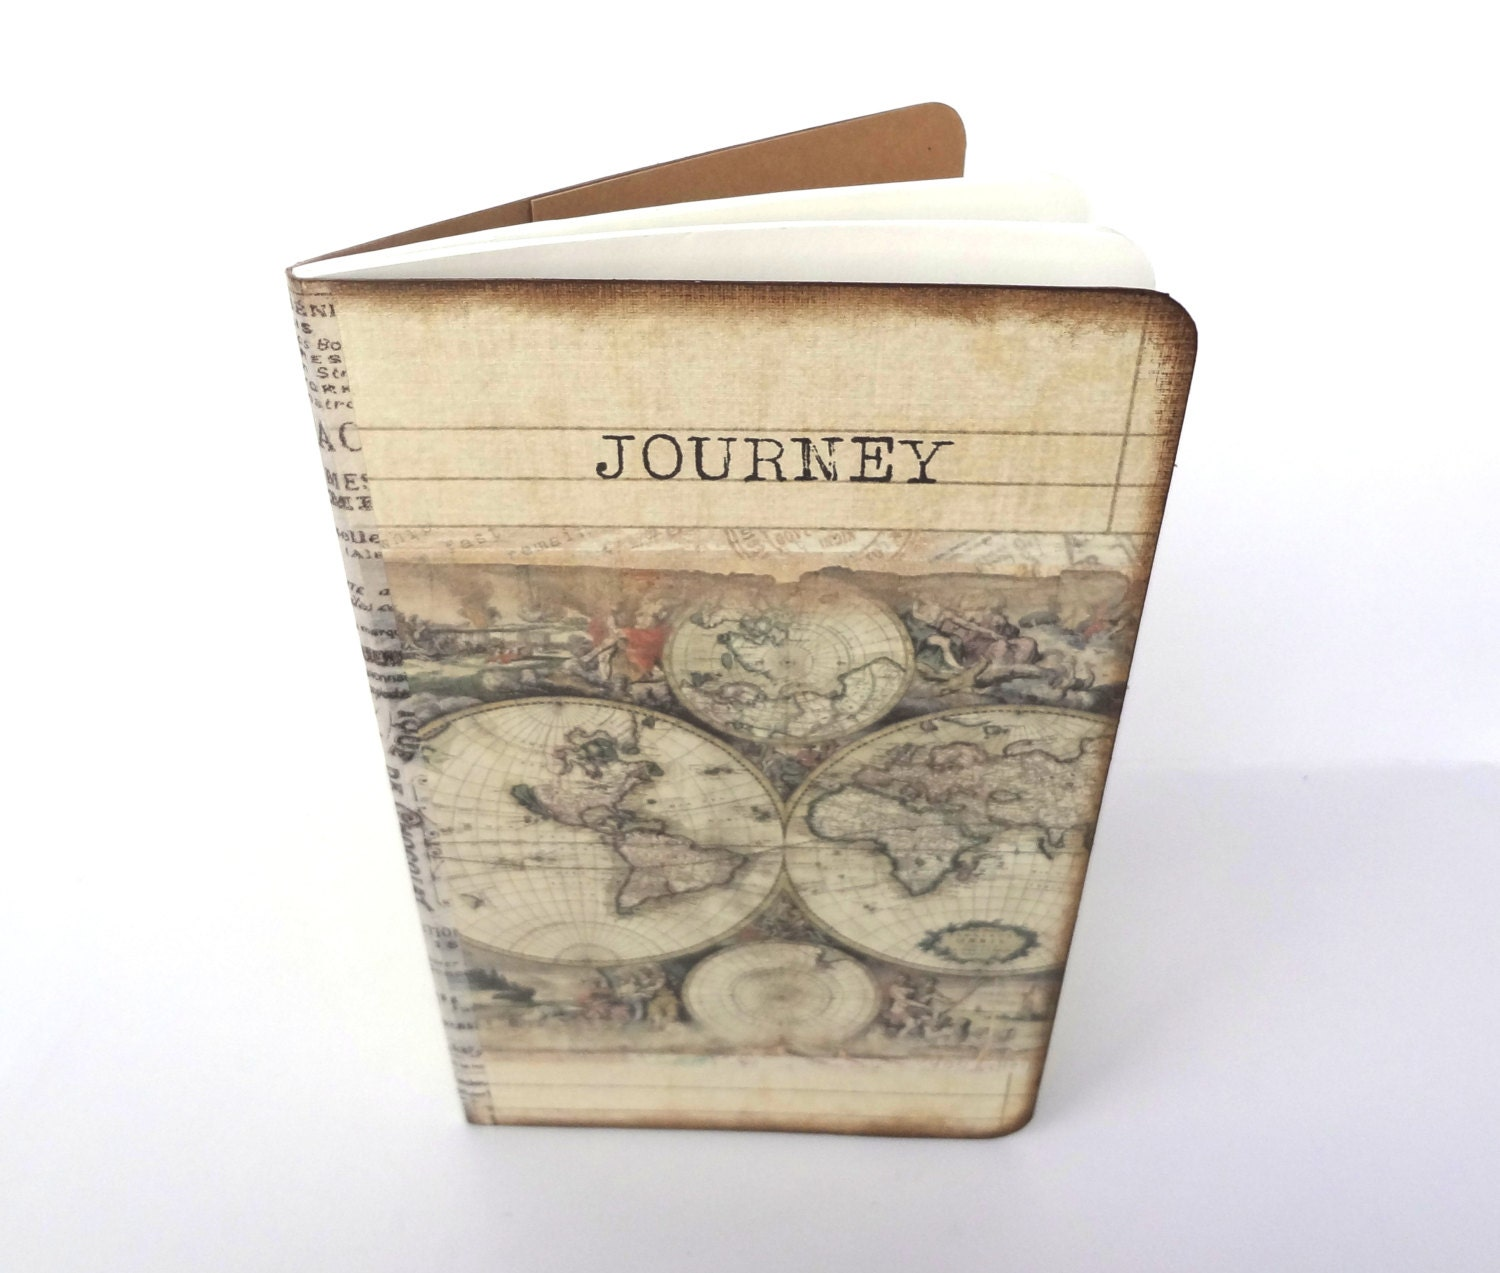 Travel journal world map journal travel notebook journey zoom gumiabroncs Gallery